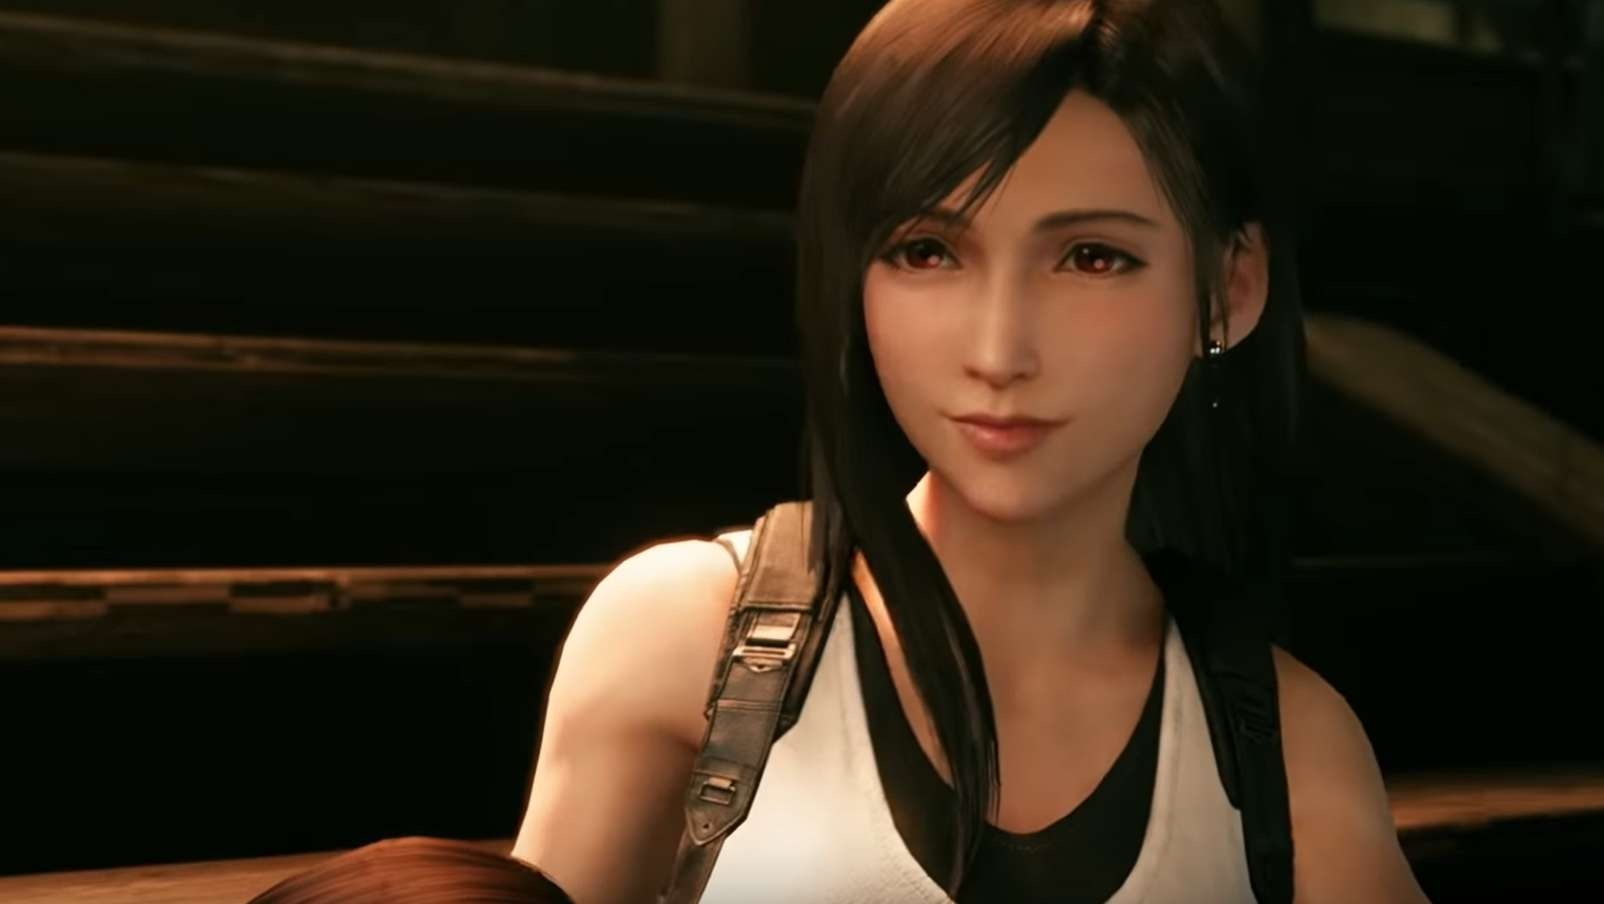 Tifa Is Profiled In A New Tweet On The Official Twitter Account For Final Fantasy 7 Remake